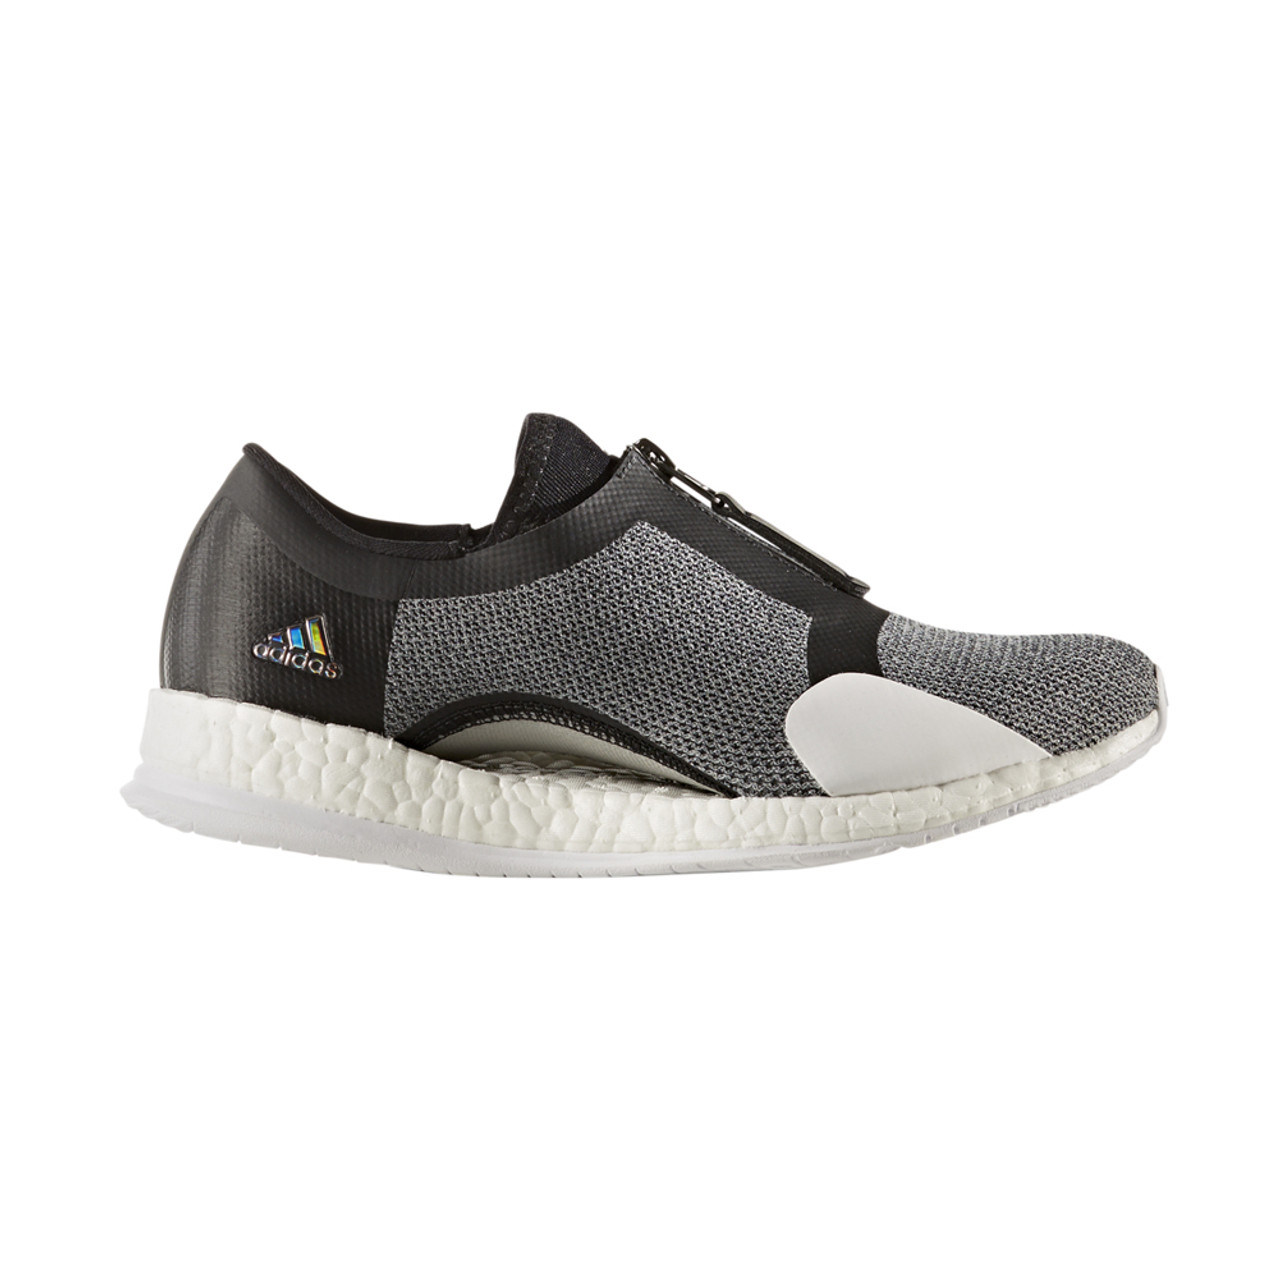 6f8e834b6fdde Adidas Women s PureBoost X TR Zip Cross Trainer Grey Black - Shop now    Shoolu